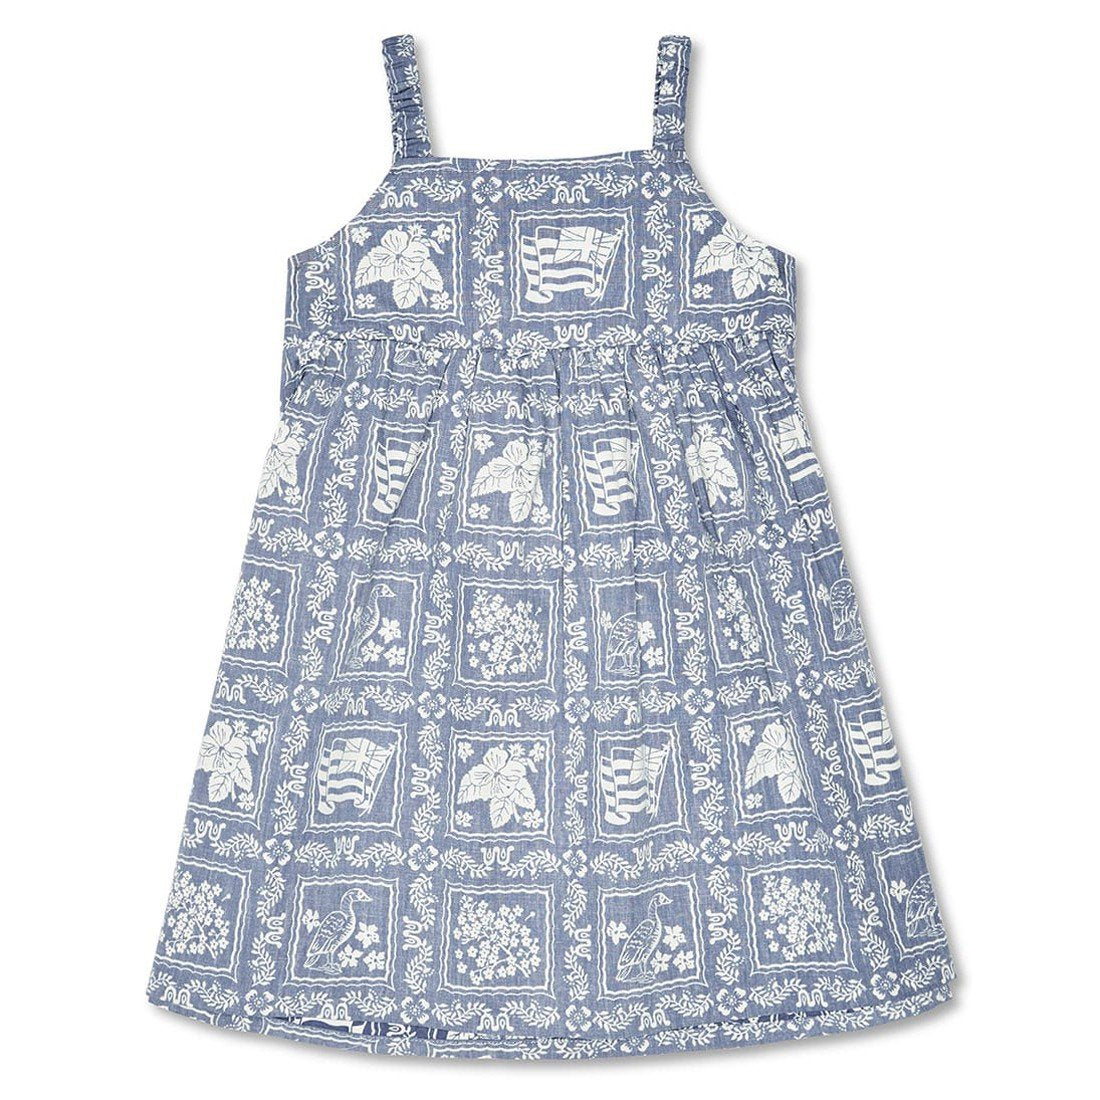 LAHAINA SAILOR / GIRLS 2T - 4T - Zoomed